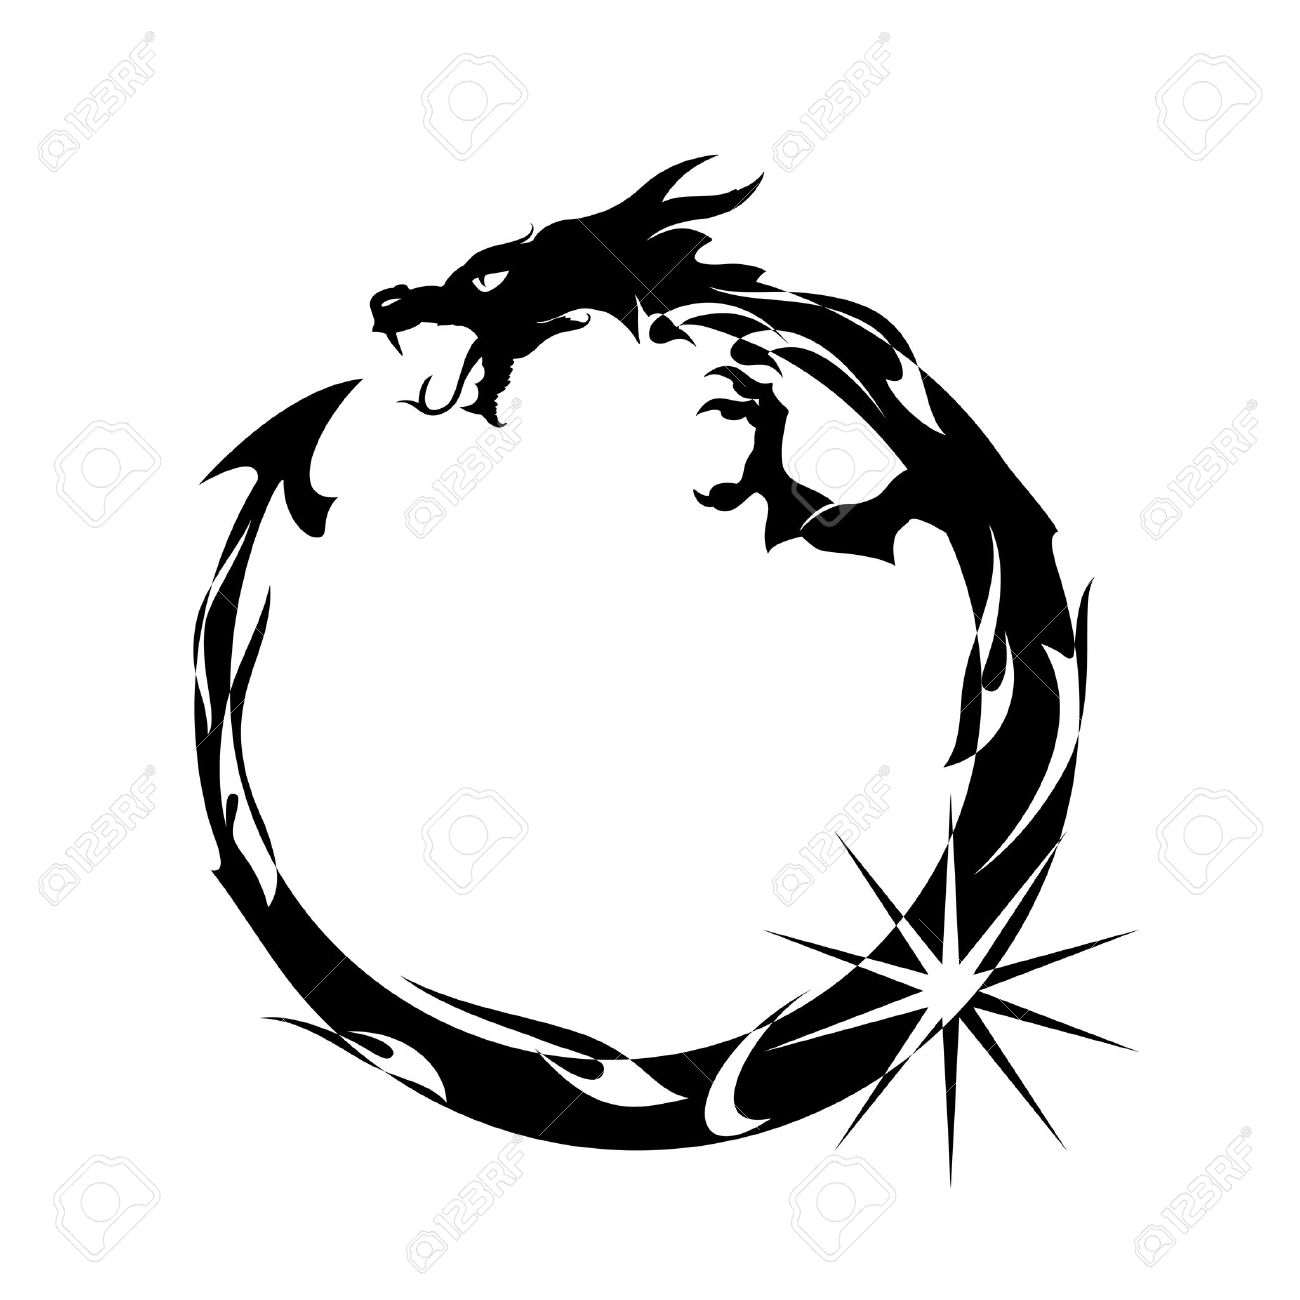 30211 serpent stock vector illustration and royalty free serpent ouroboros black dragon eating its own tail illustration buycottarizona